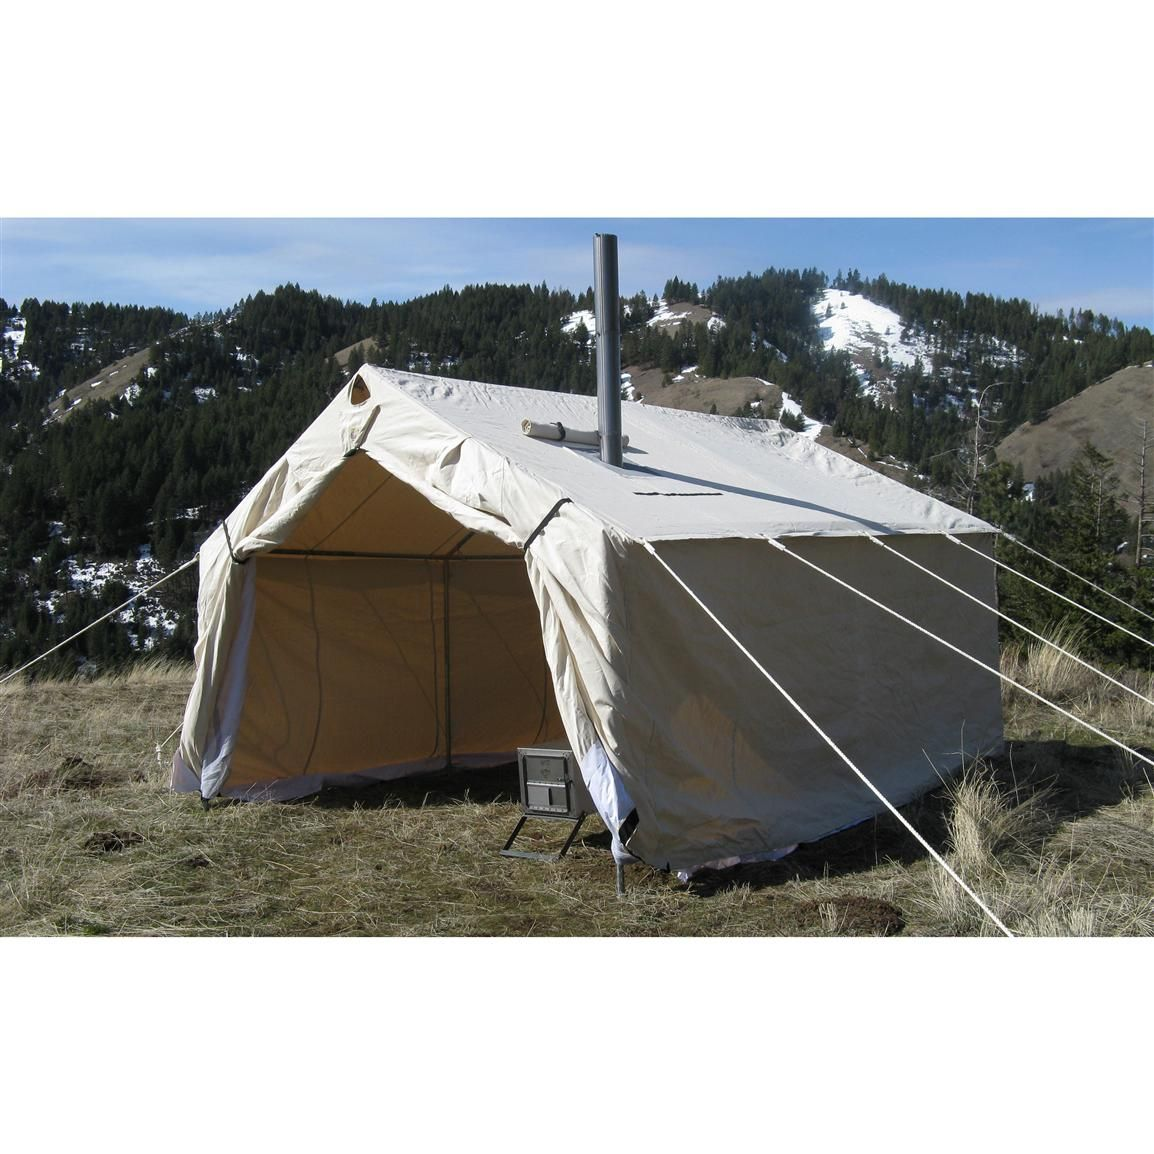 Magnum 10 X 12 X 5 H Canvas Wall Tent 143151 Outfitter Canvas Tents At Sportsman S Guide Canvas Wall Tent Wall Tent Tent